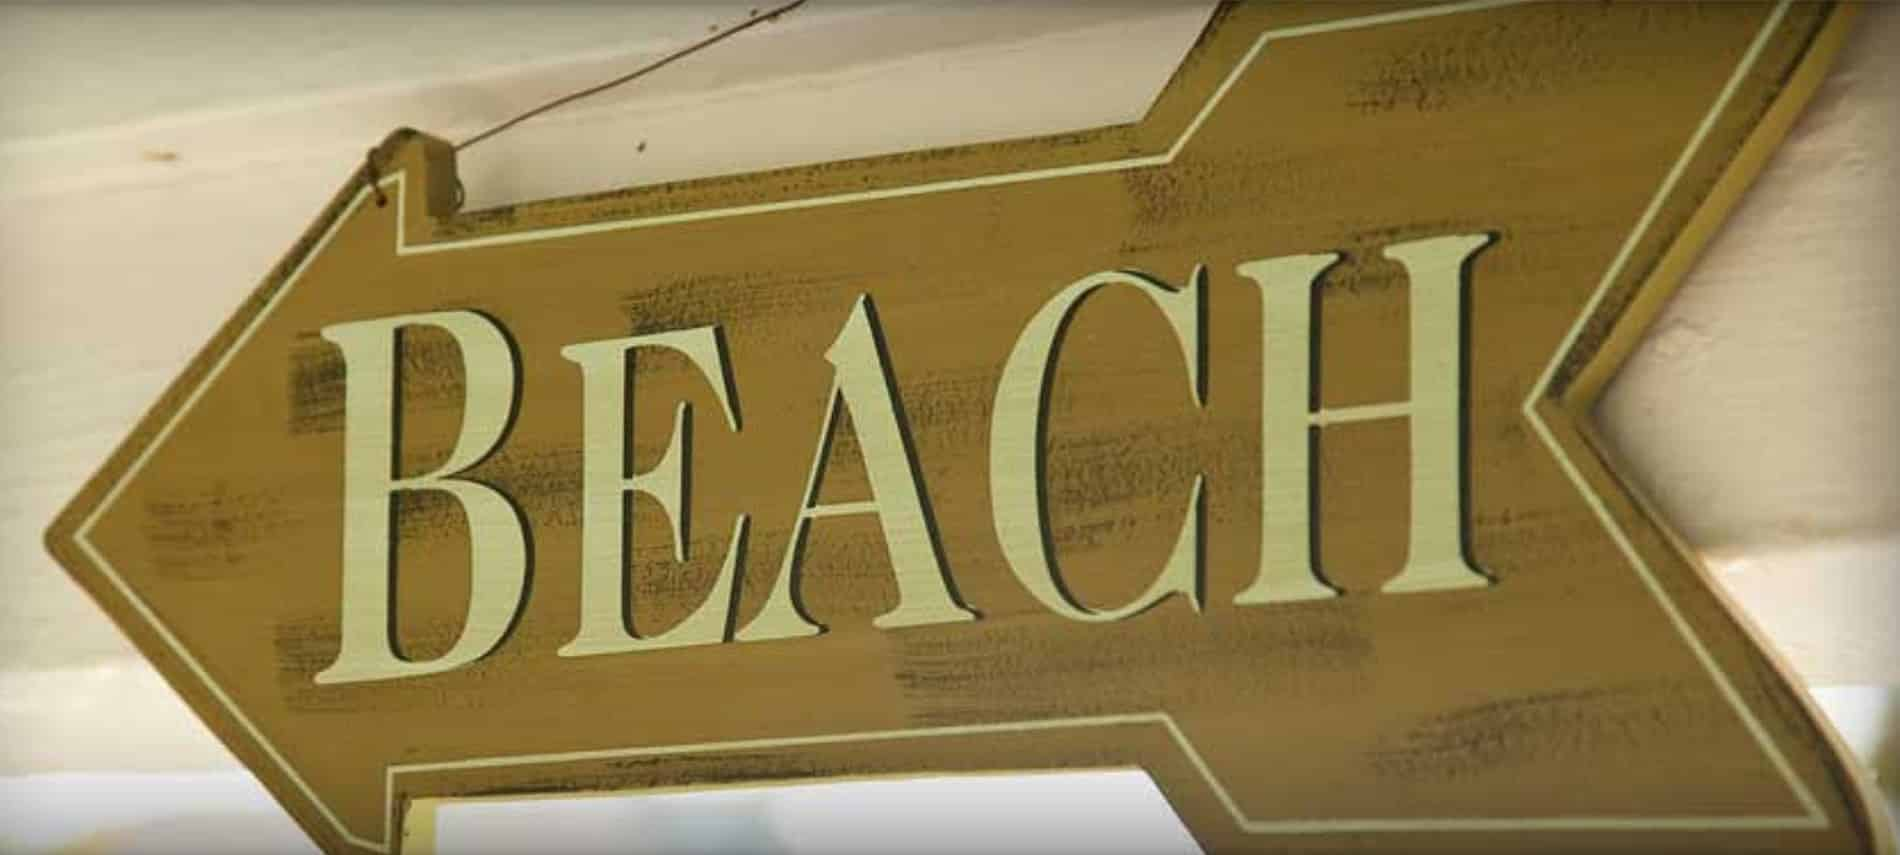 """Large wooden arrow sign with the word """"BEACH"""" in beige capital letters."""